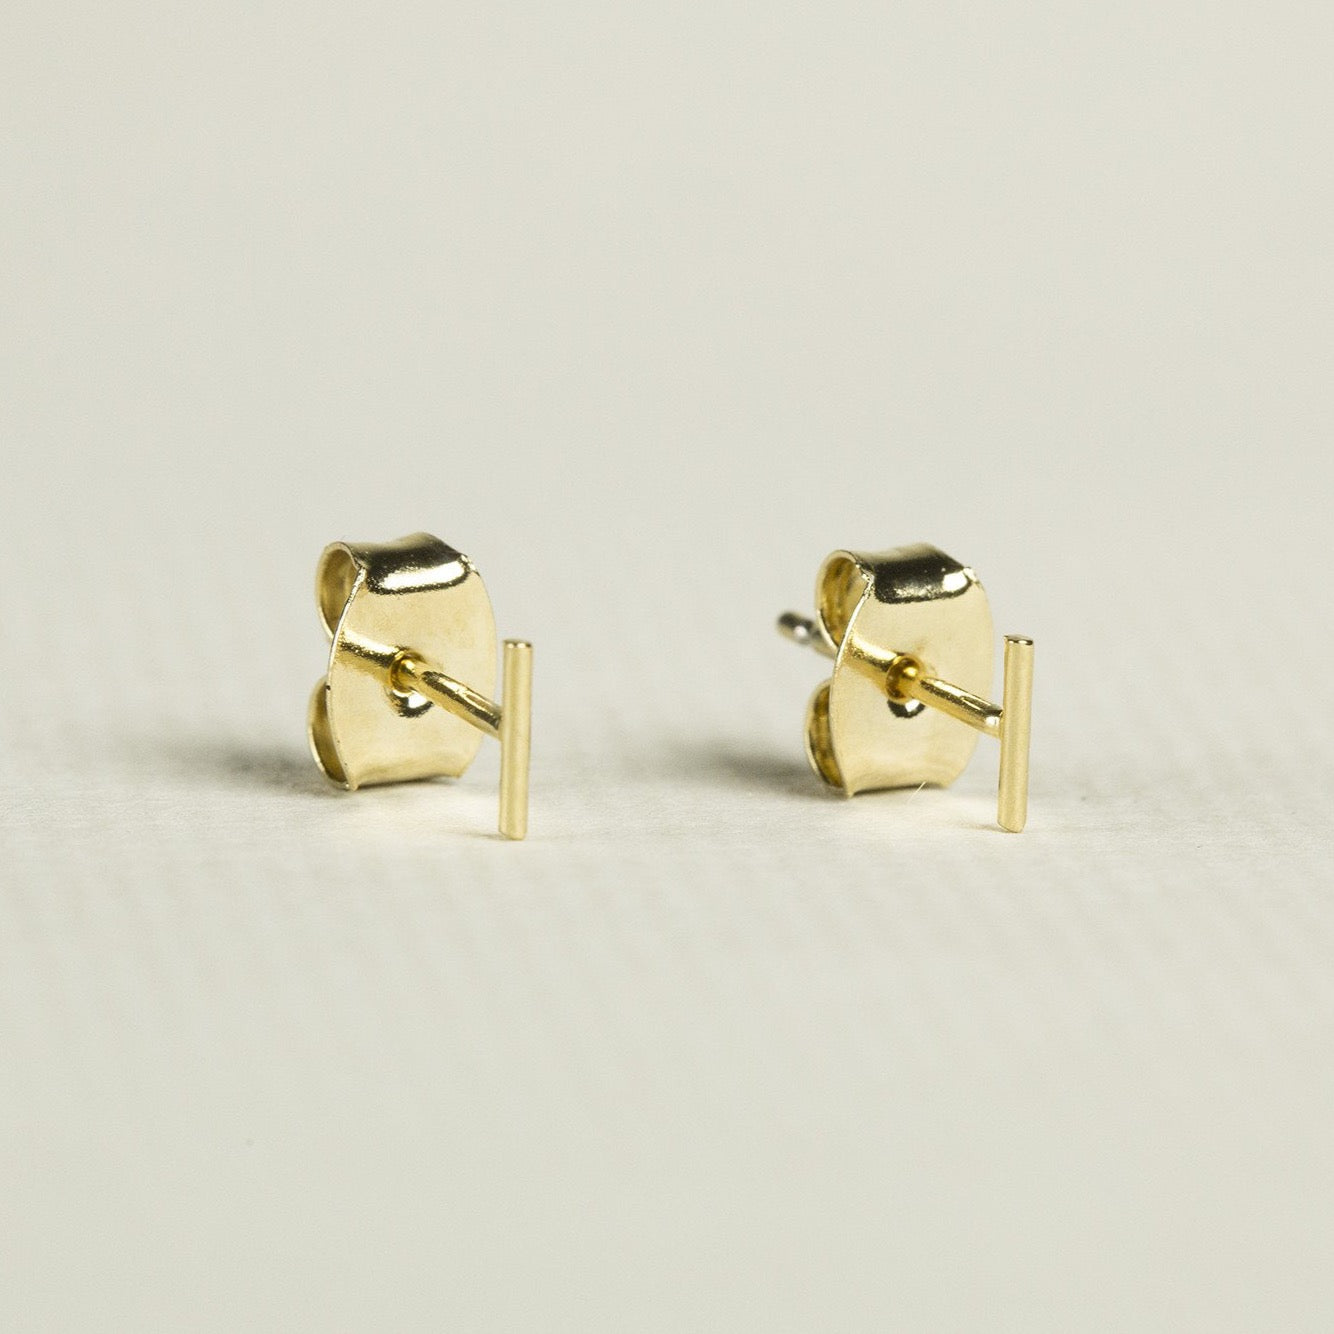 adorable little bars to compliment any ensemble